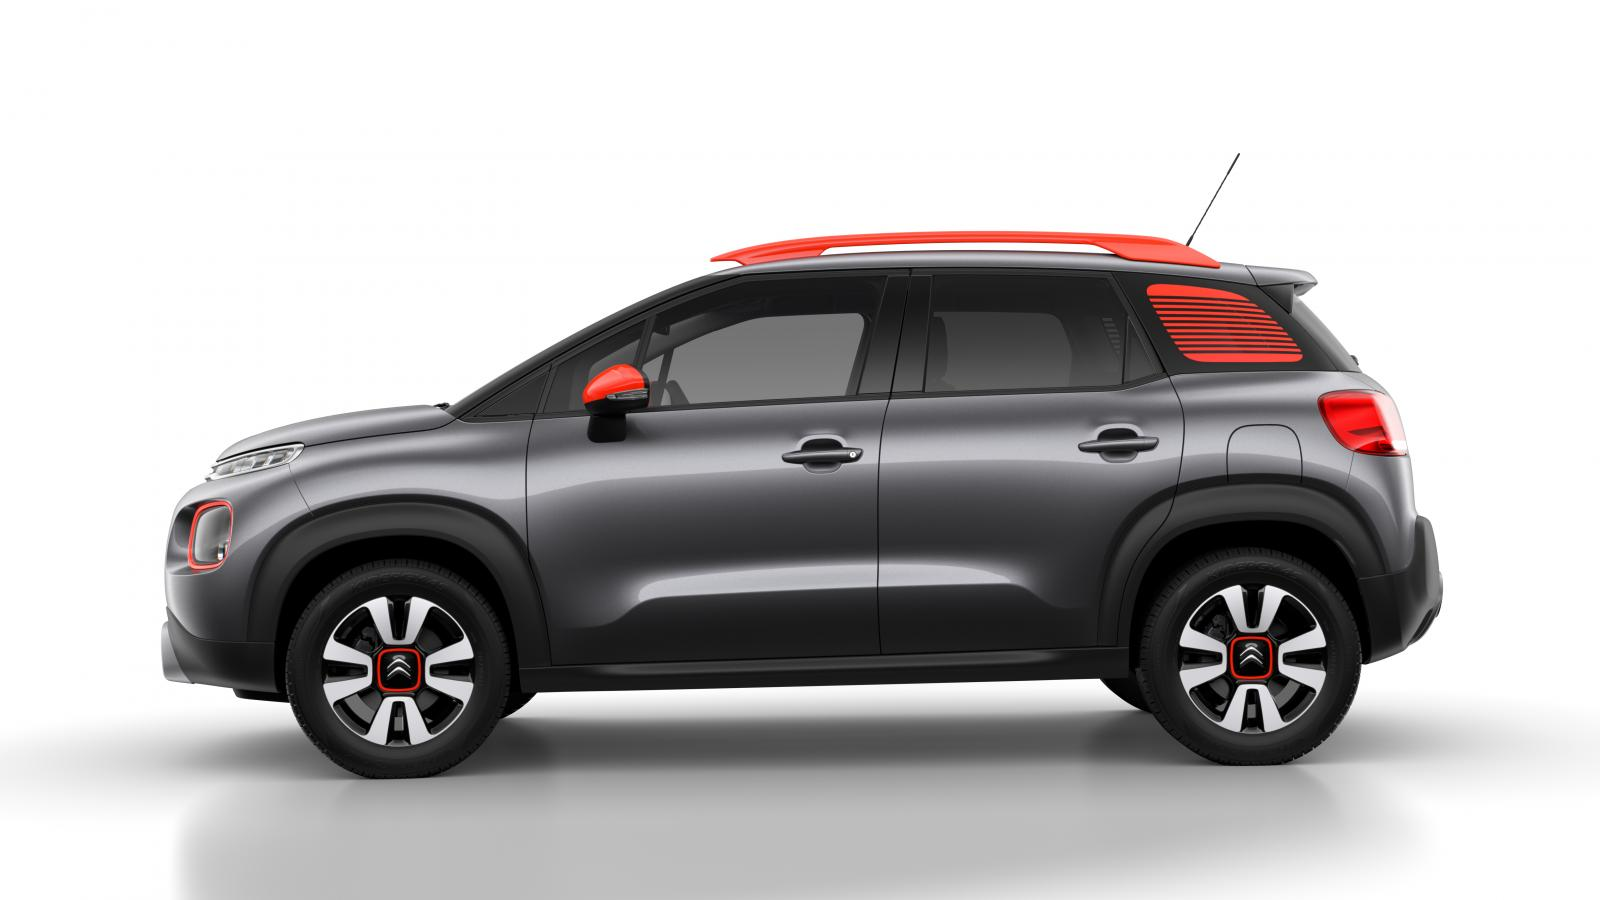 SUV Compact C3 Aircross - Misty Grey